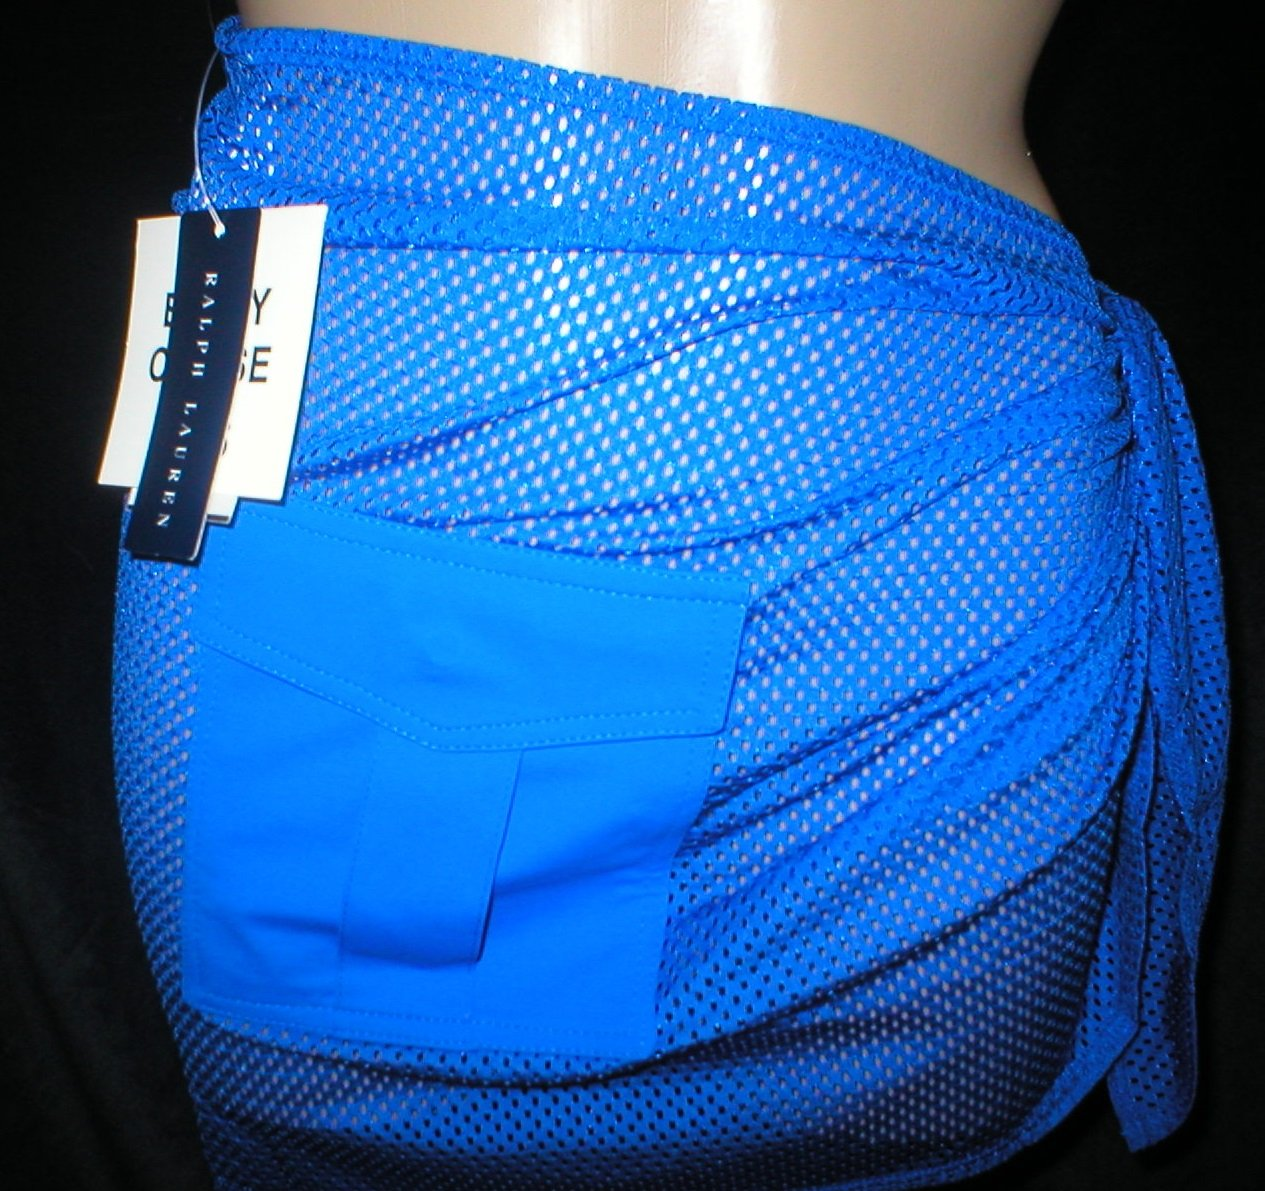 Ralph Lauren Blue Sheer Fishnet Swimsuit Cover Wrap Skirt M NWT